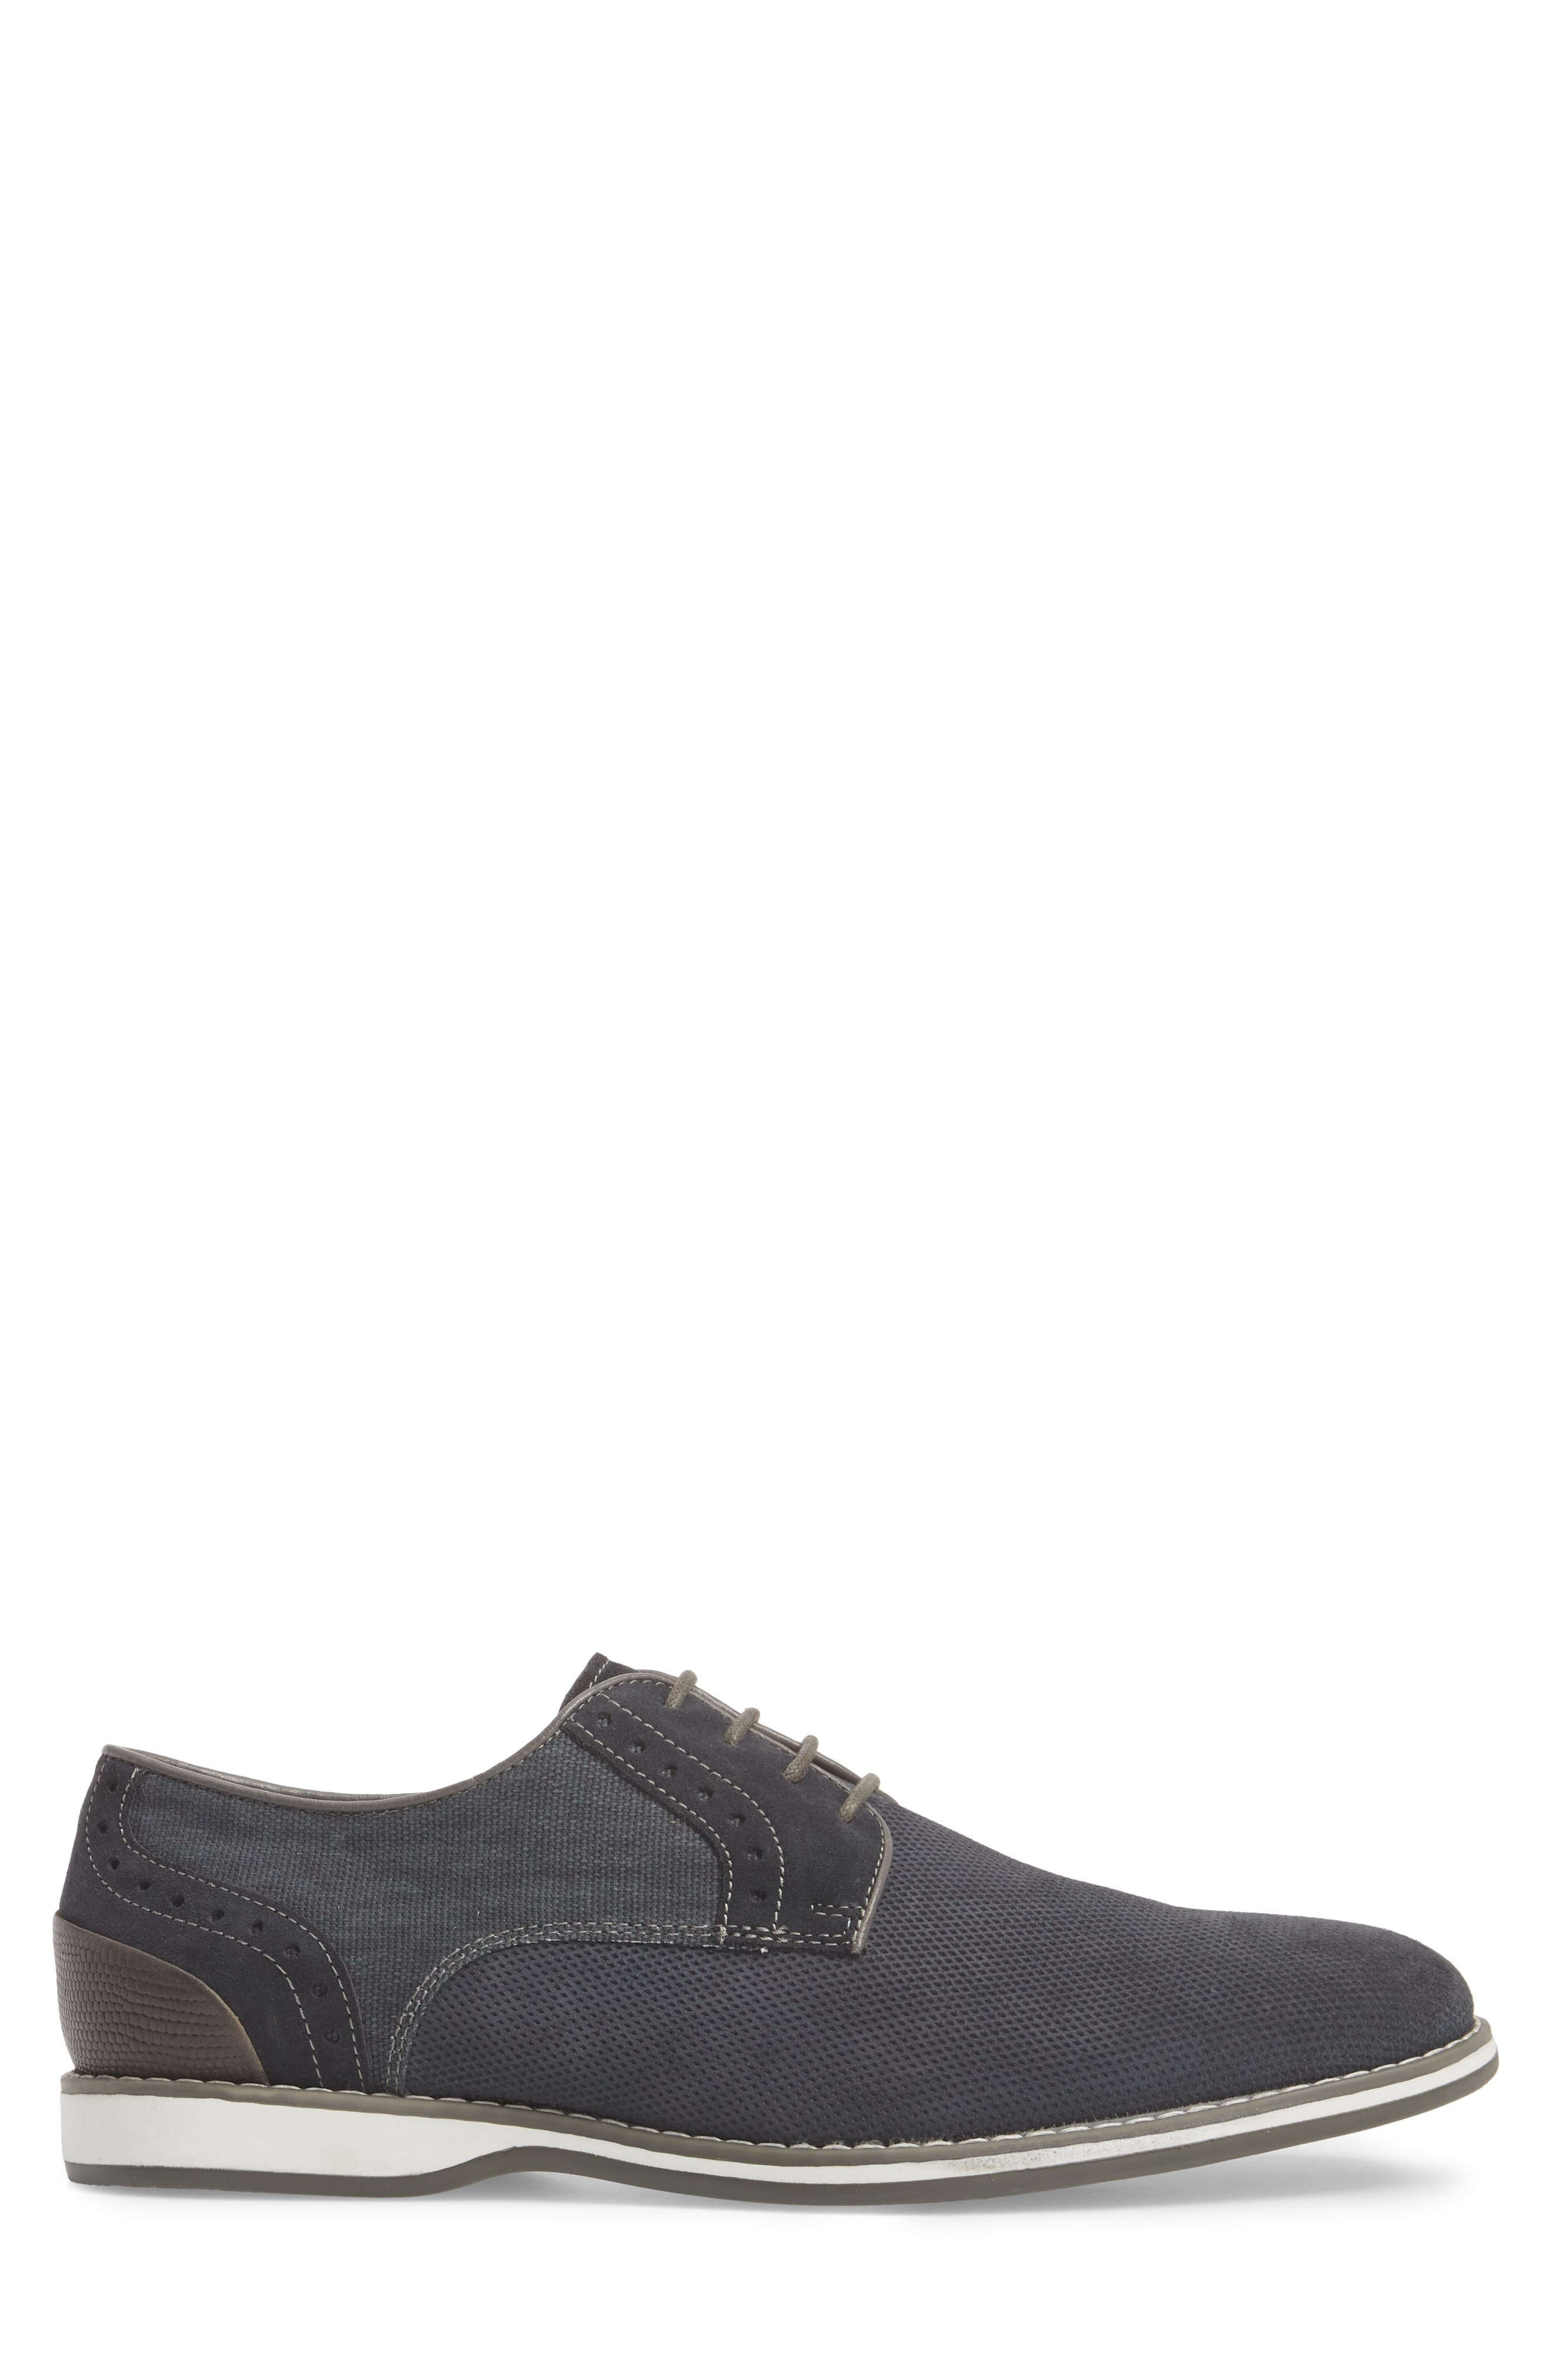 REACTION KENNETH COLE, Weiser Lace-up Derby, Alternate thumbnail 3, color, 410